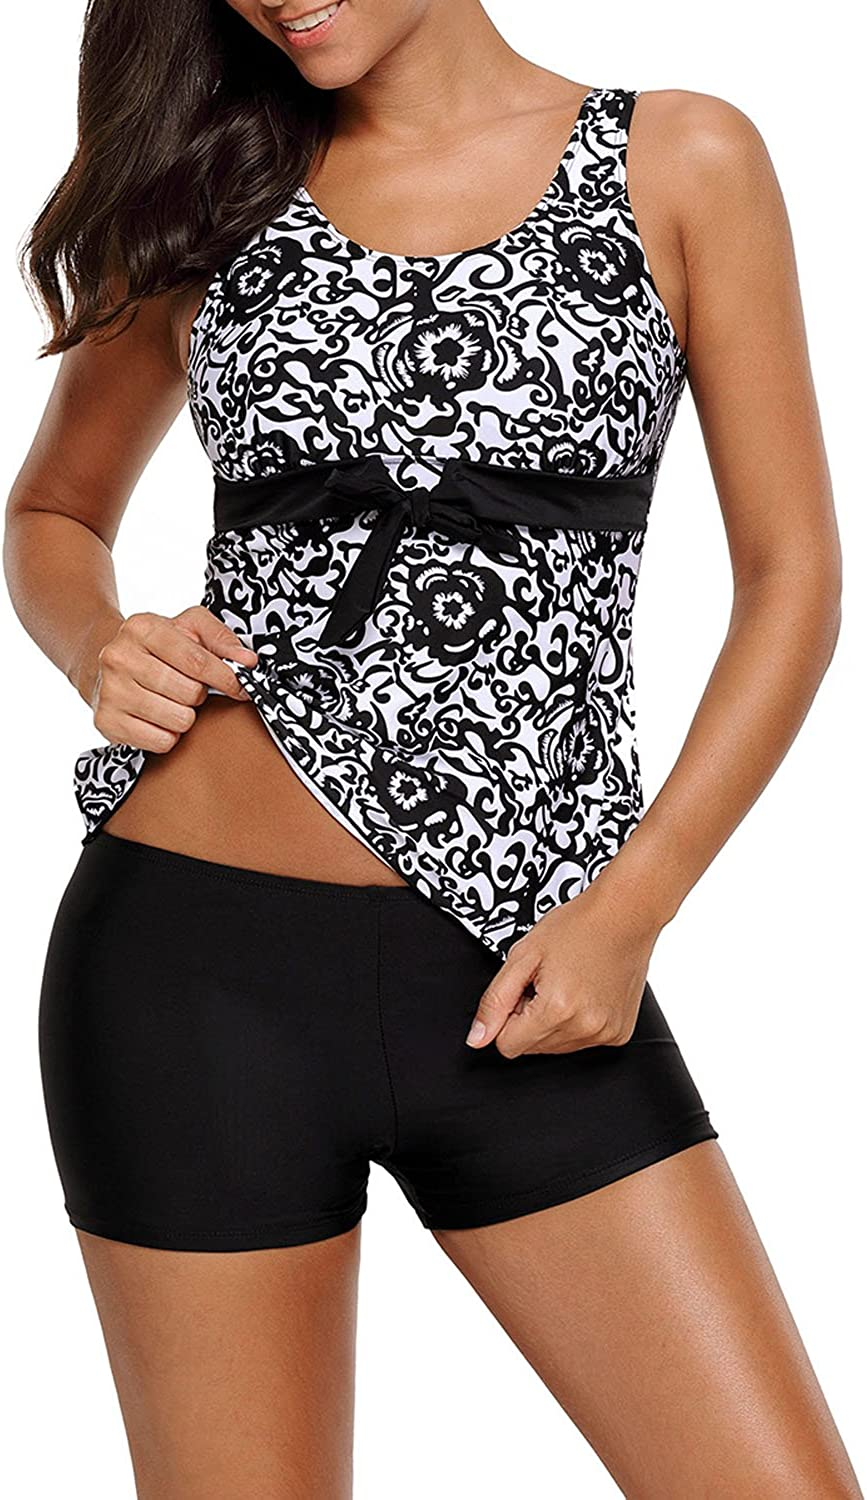 HOTAPEI Women's Floral Printed Tops Two Piece Swimsuit Tankini Set with Boyshort